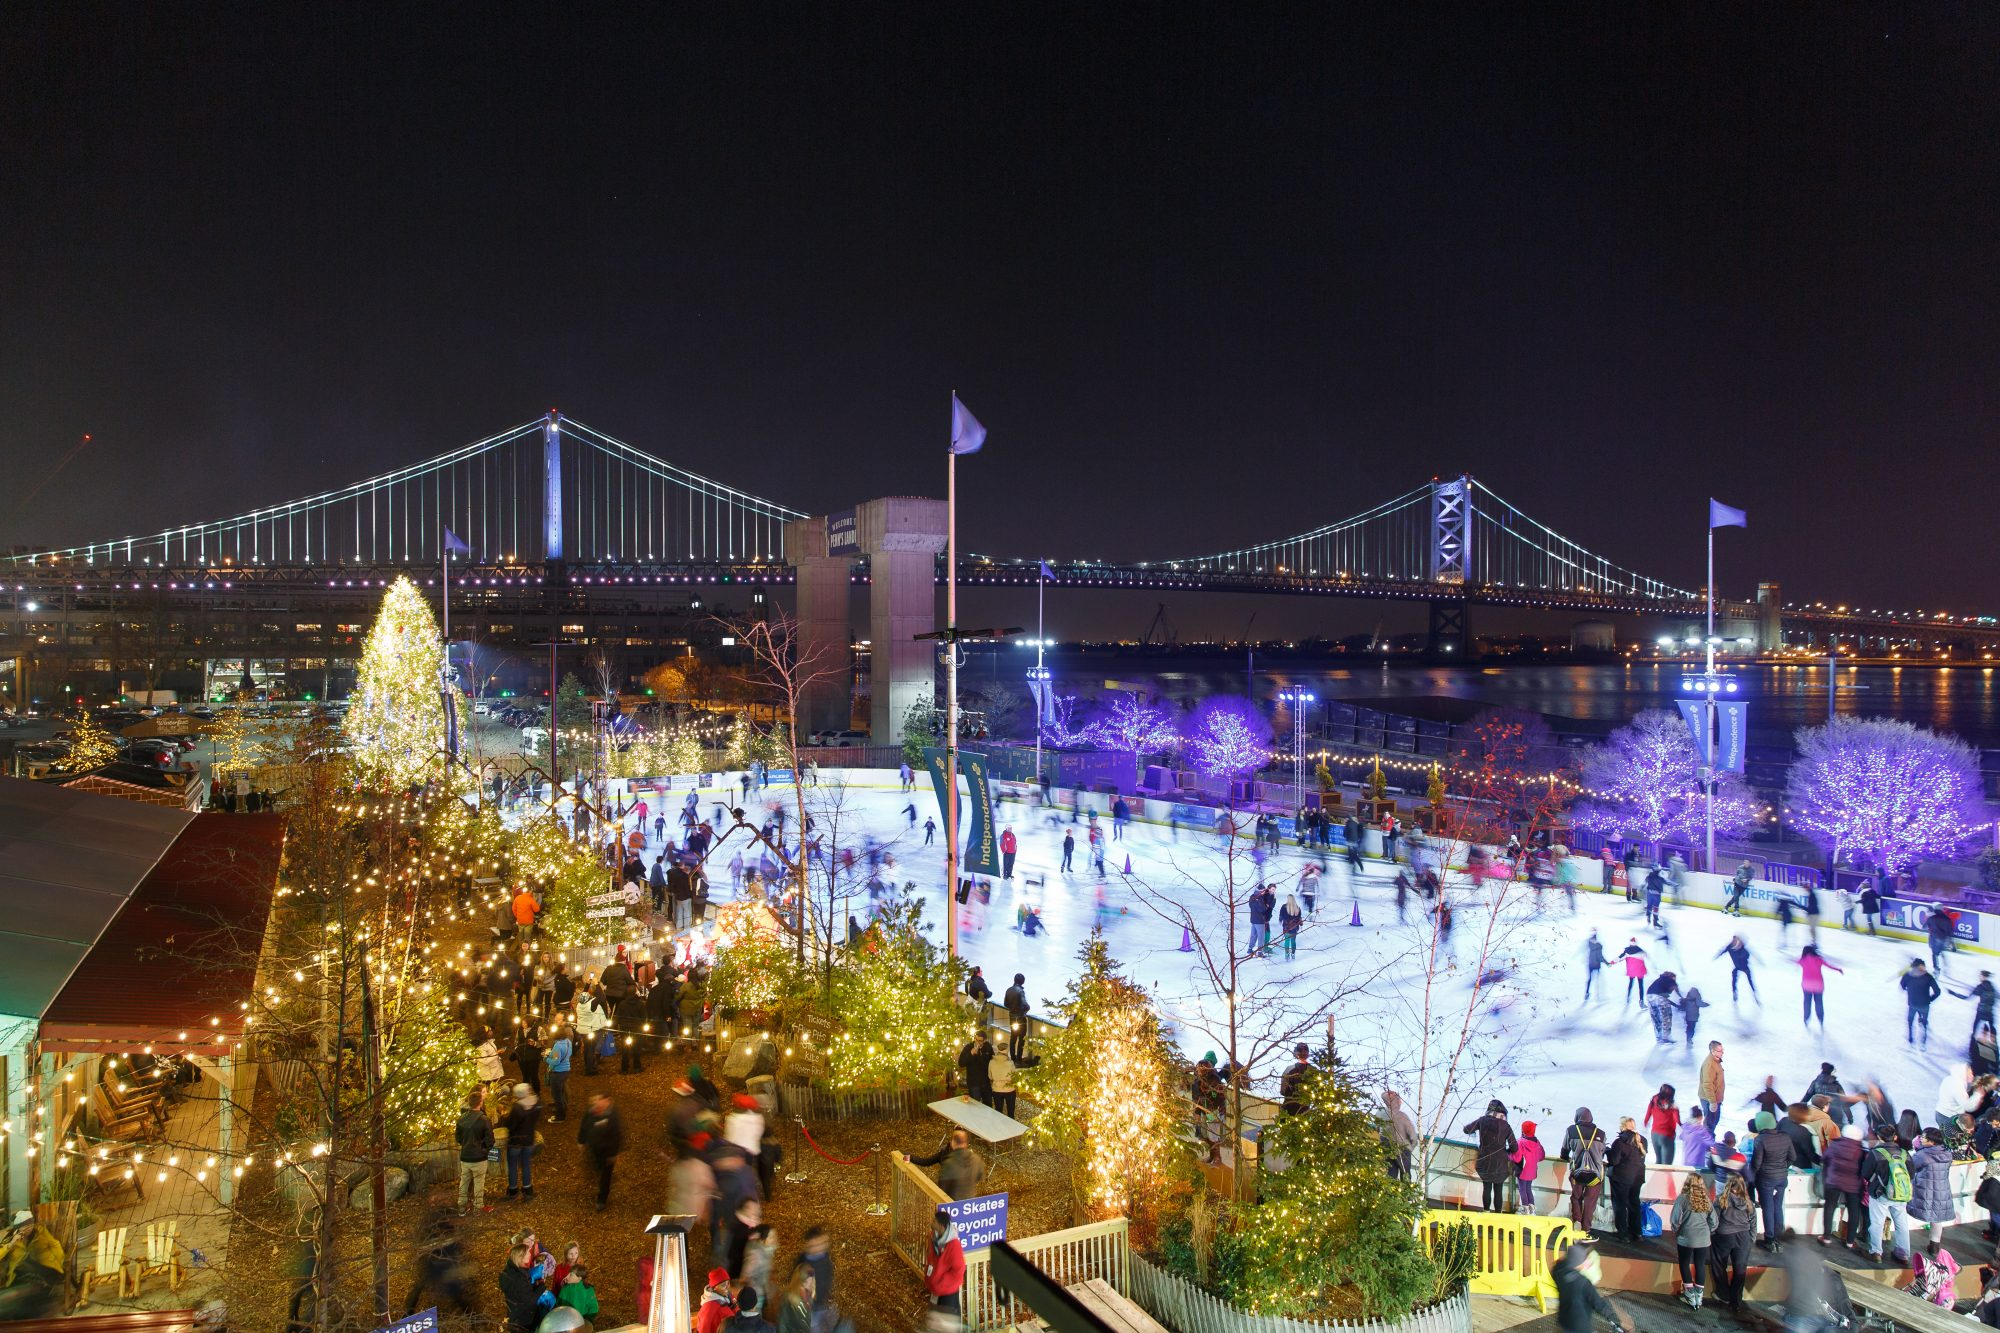 ice skating rink at Blue Cross RiverRink Winterfest